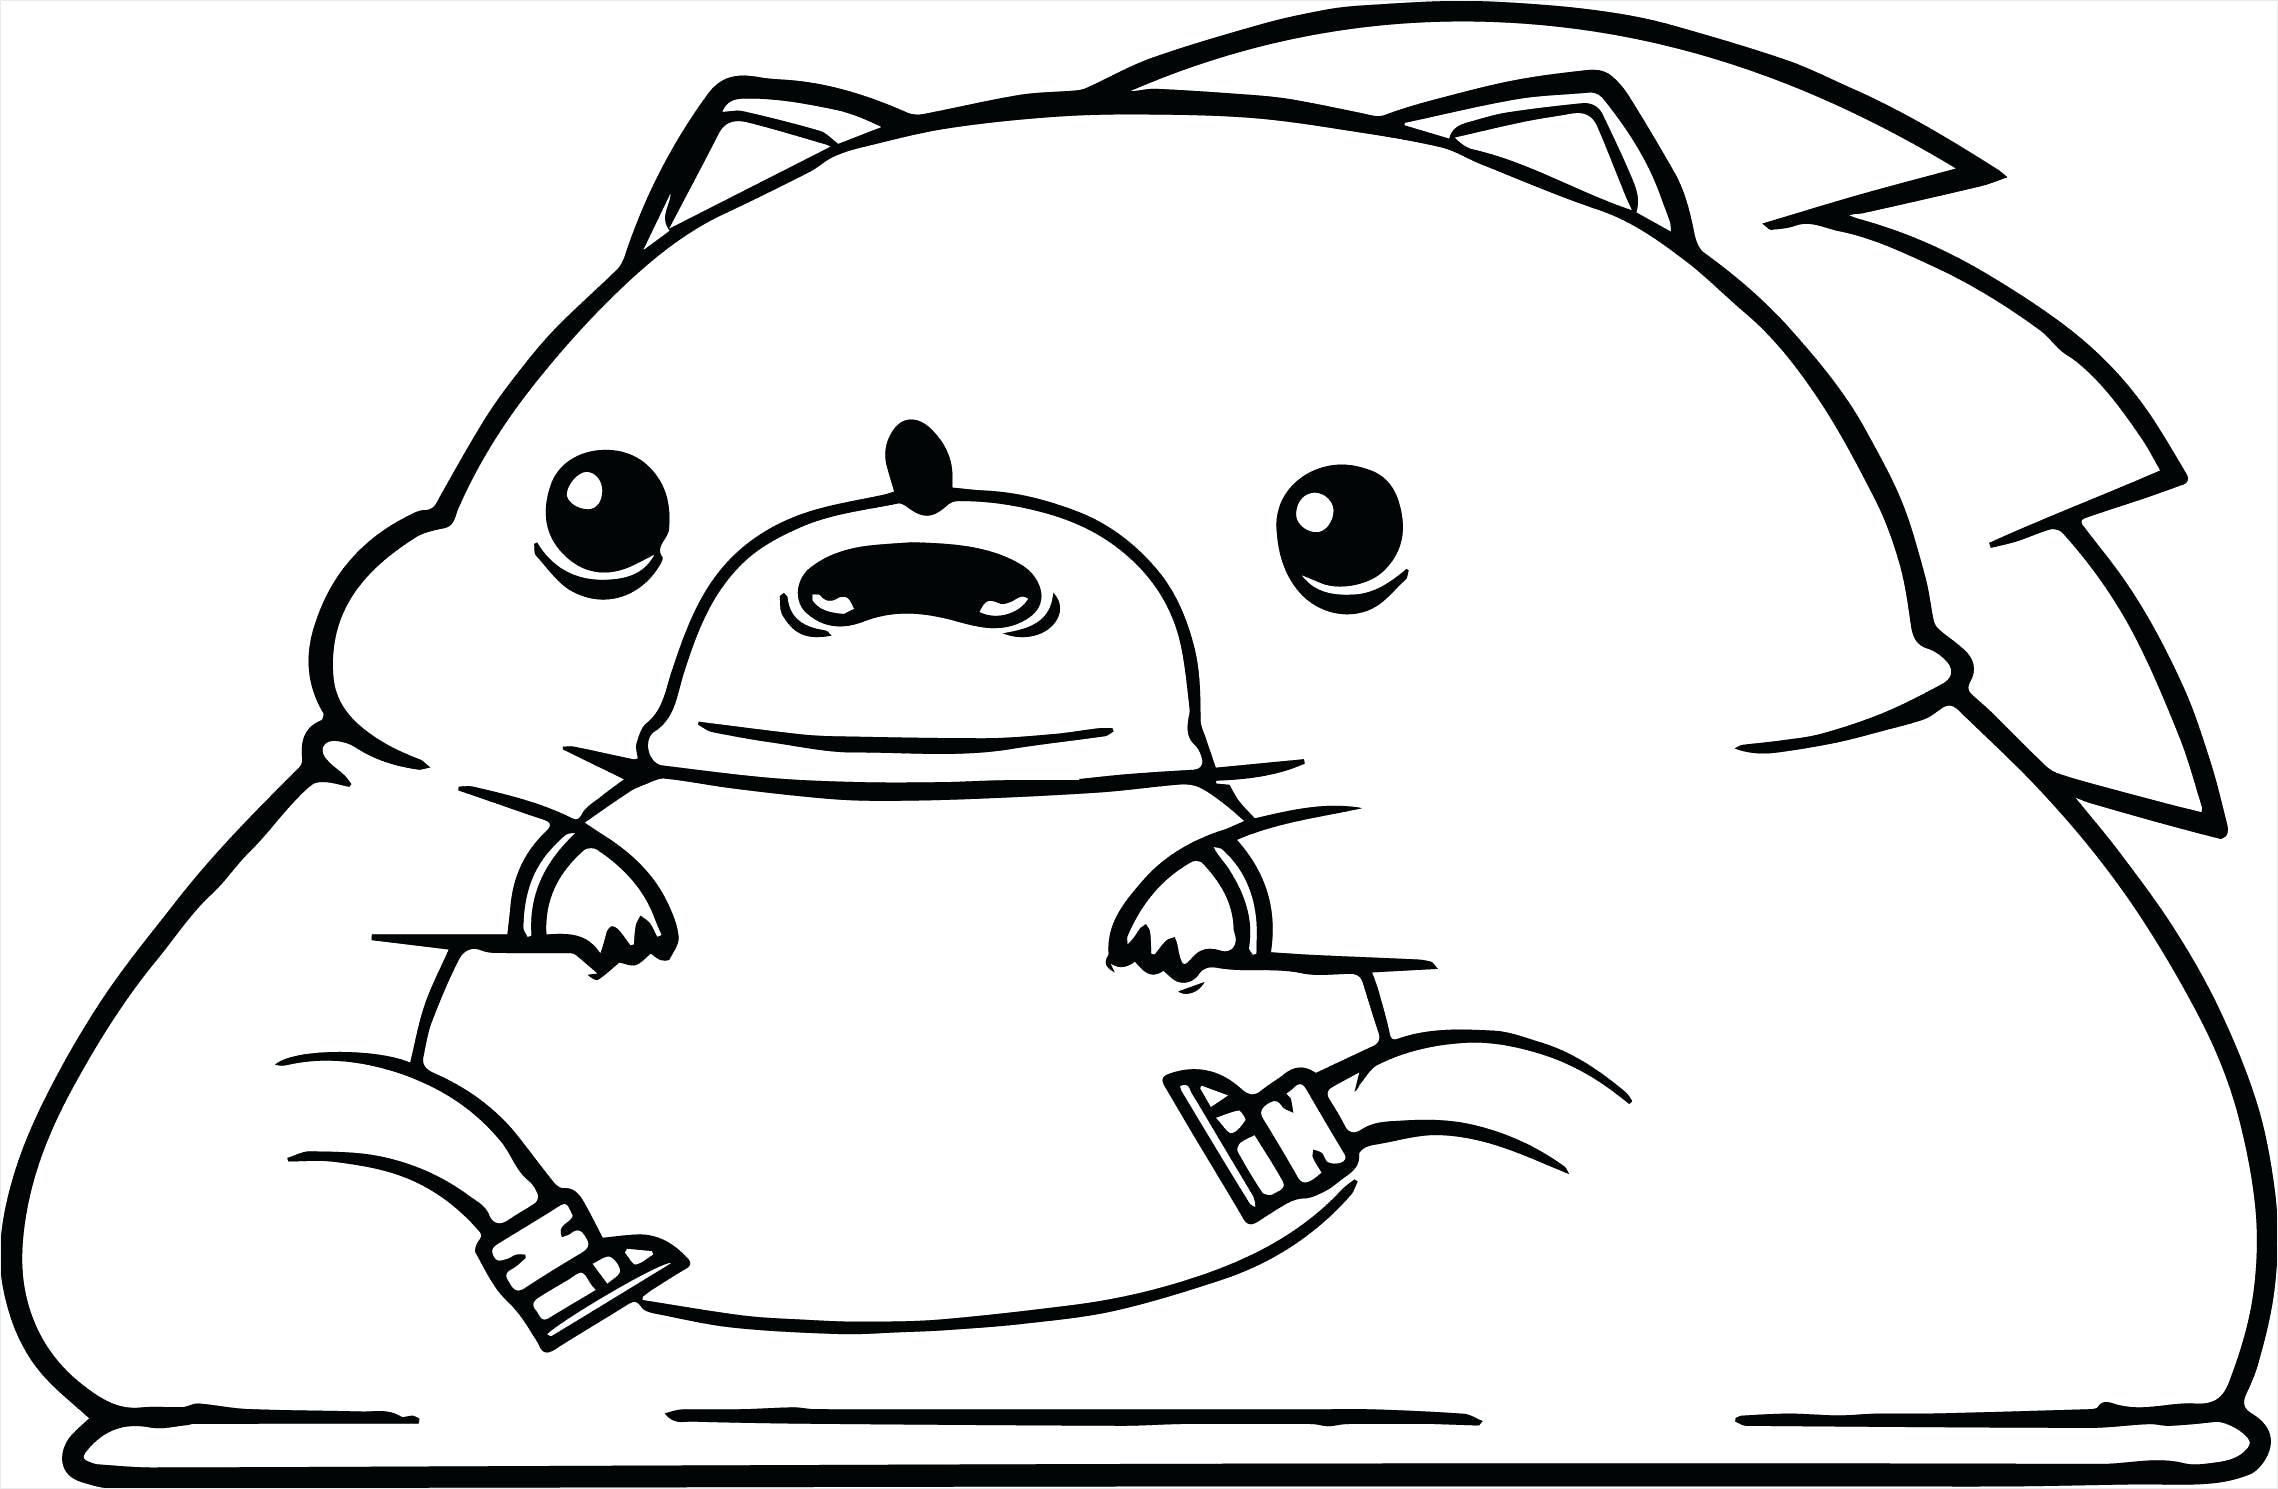 Super Fat Sonic Coloring Page